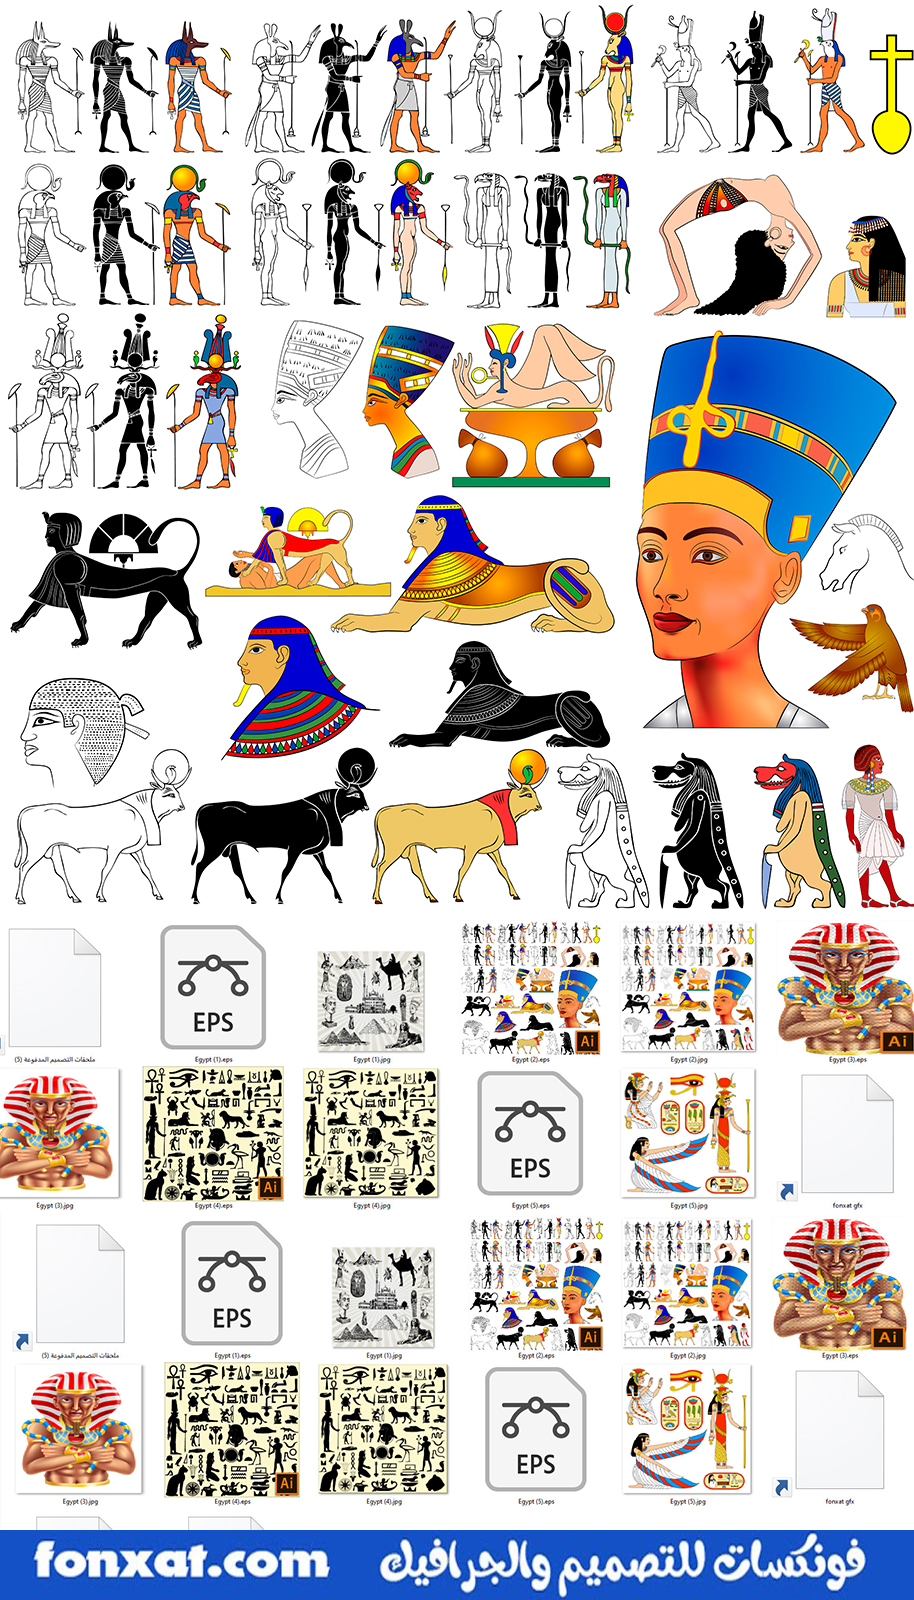 Pharaonic designs, ancient Egyptian civilization, the highest quality